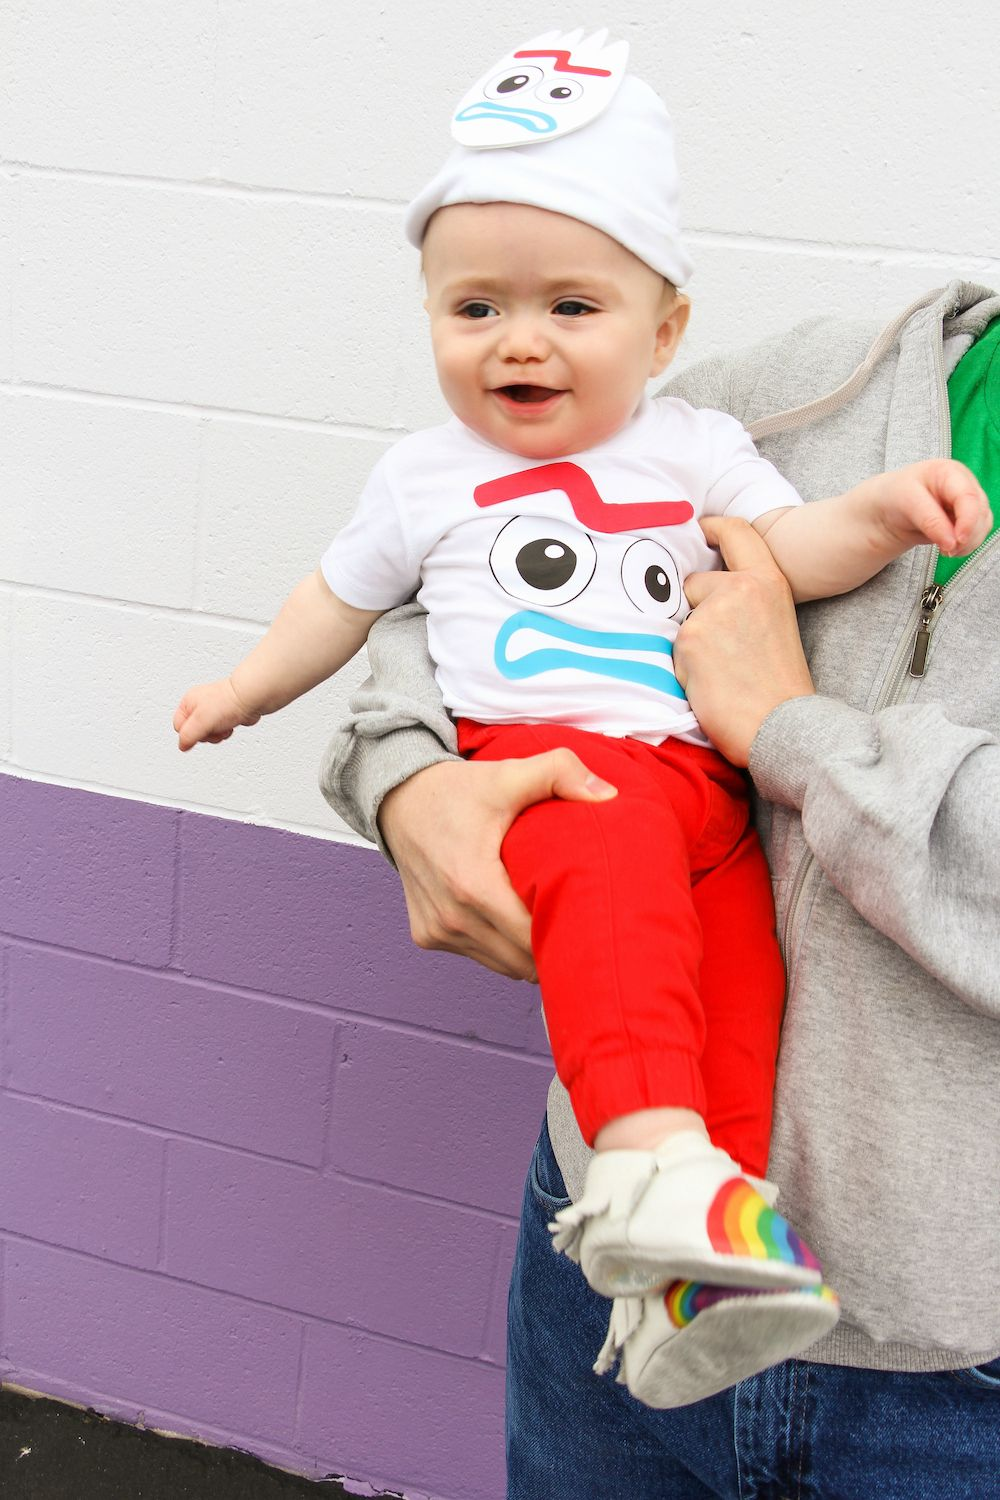 This option comes with the vest and hat; 35 Cute Baby Costumes 2021 Cute Halloween Costumes For Infant Girls And Boys